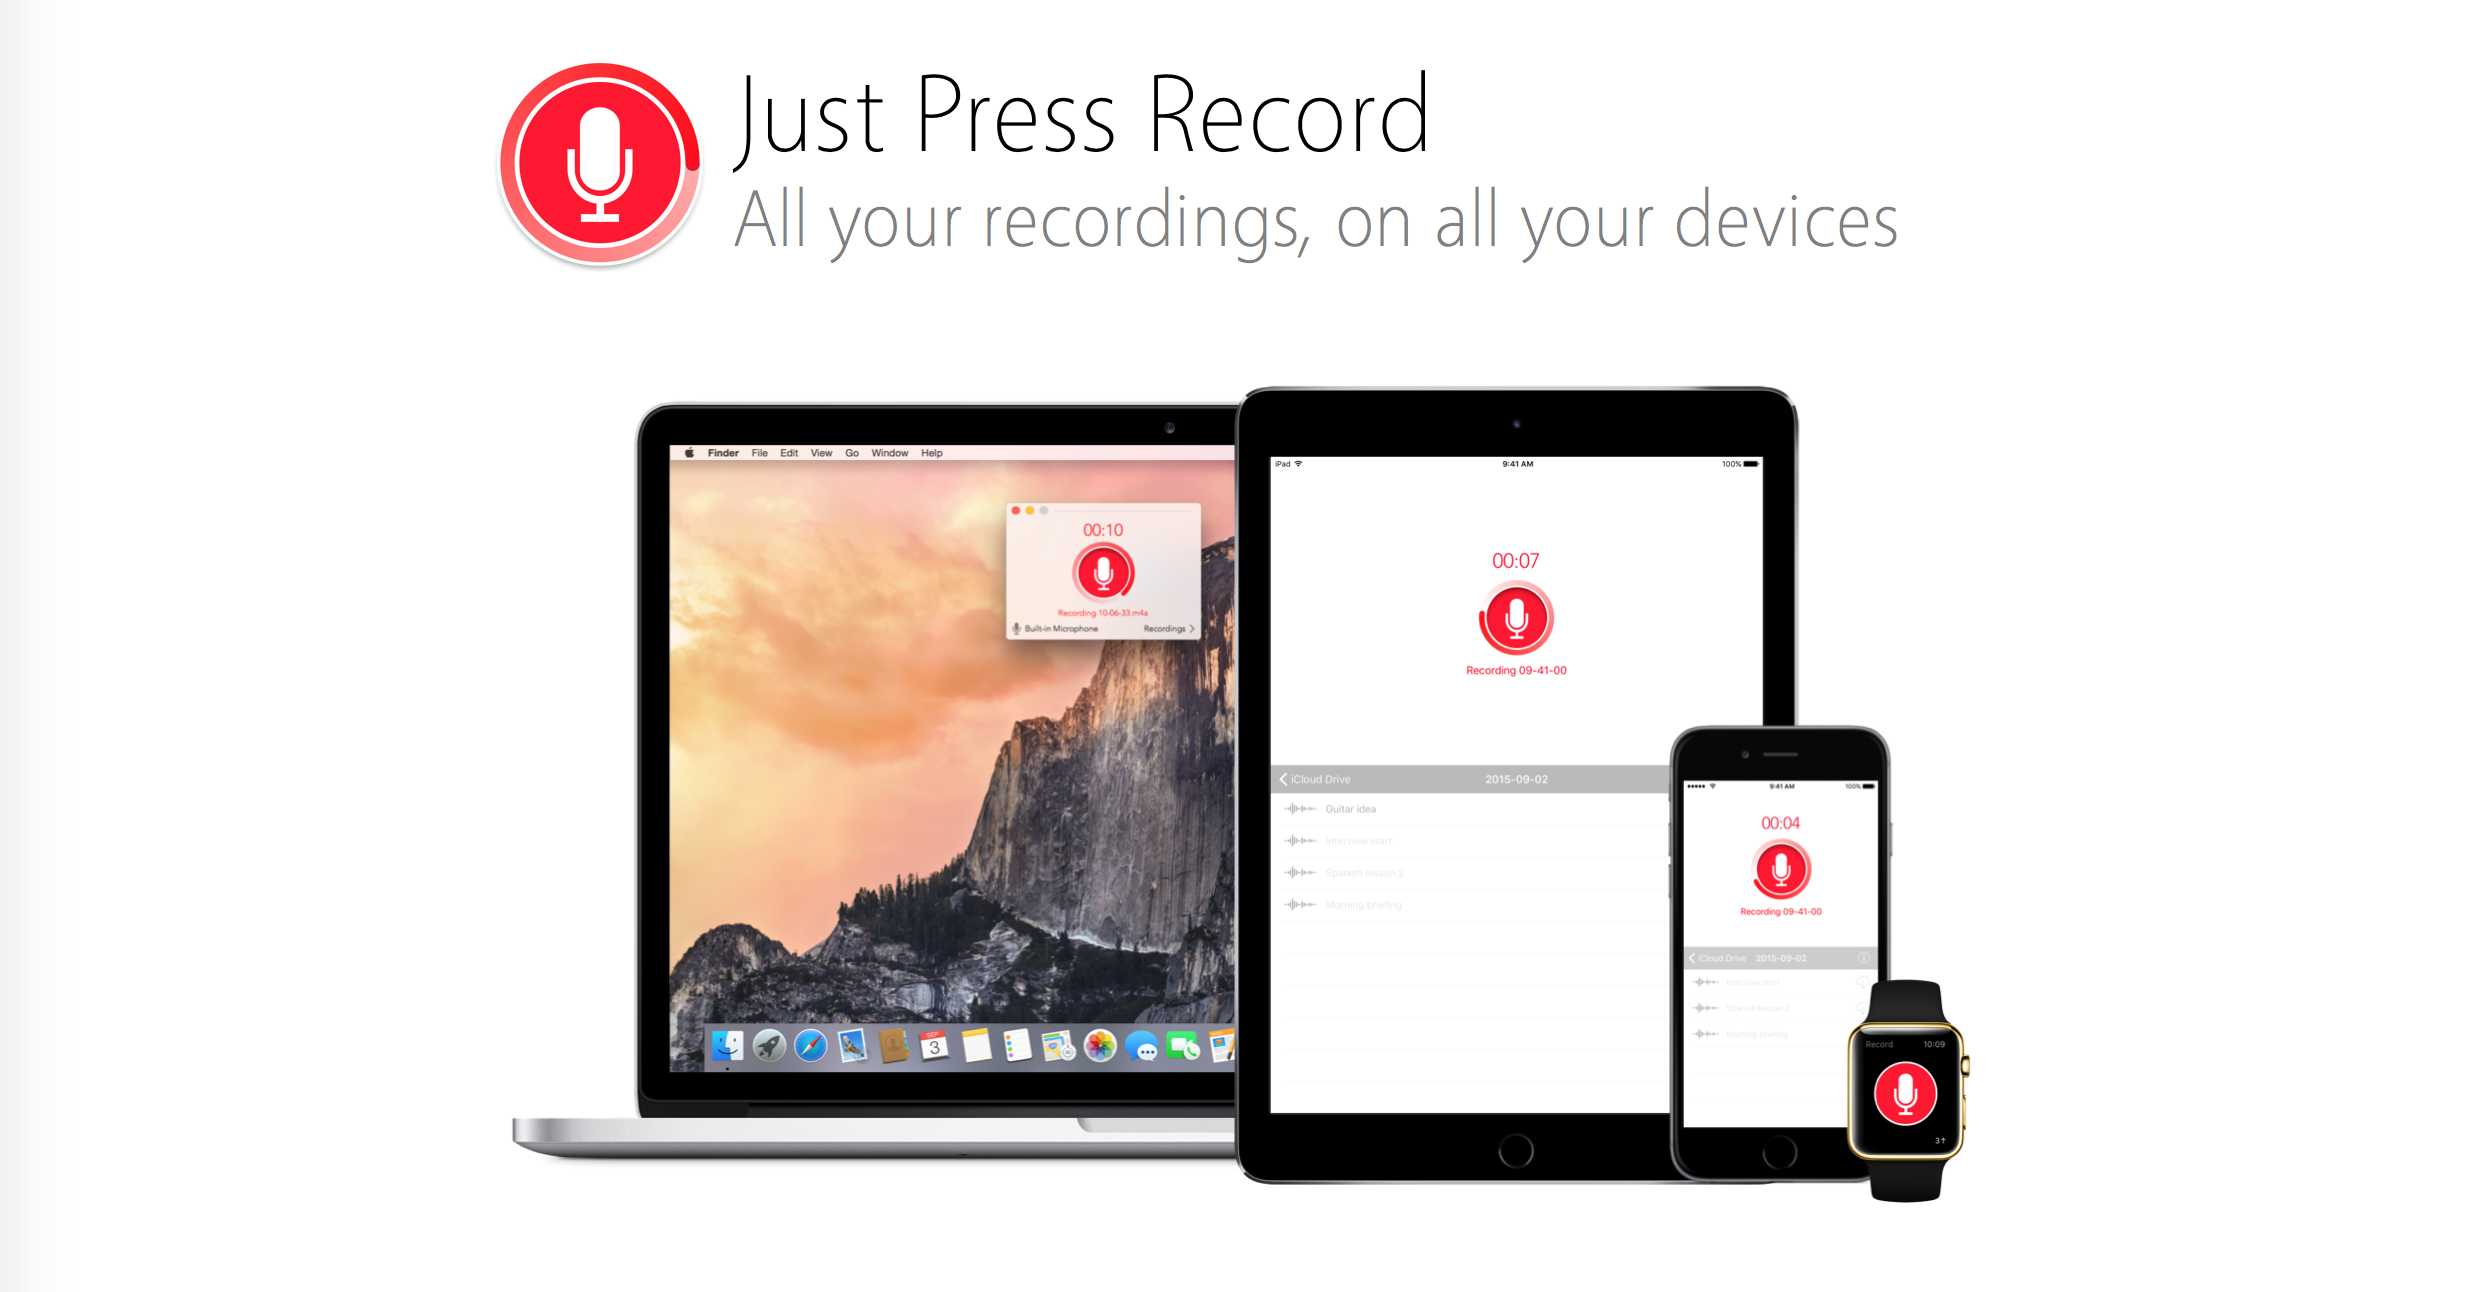 Just Press Record adds 3D Touch support into the voice memo mix